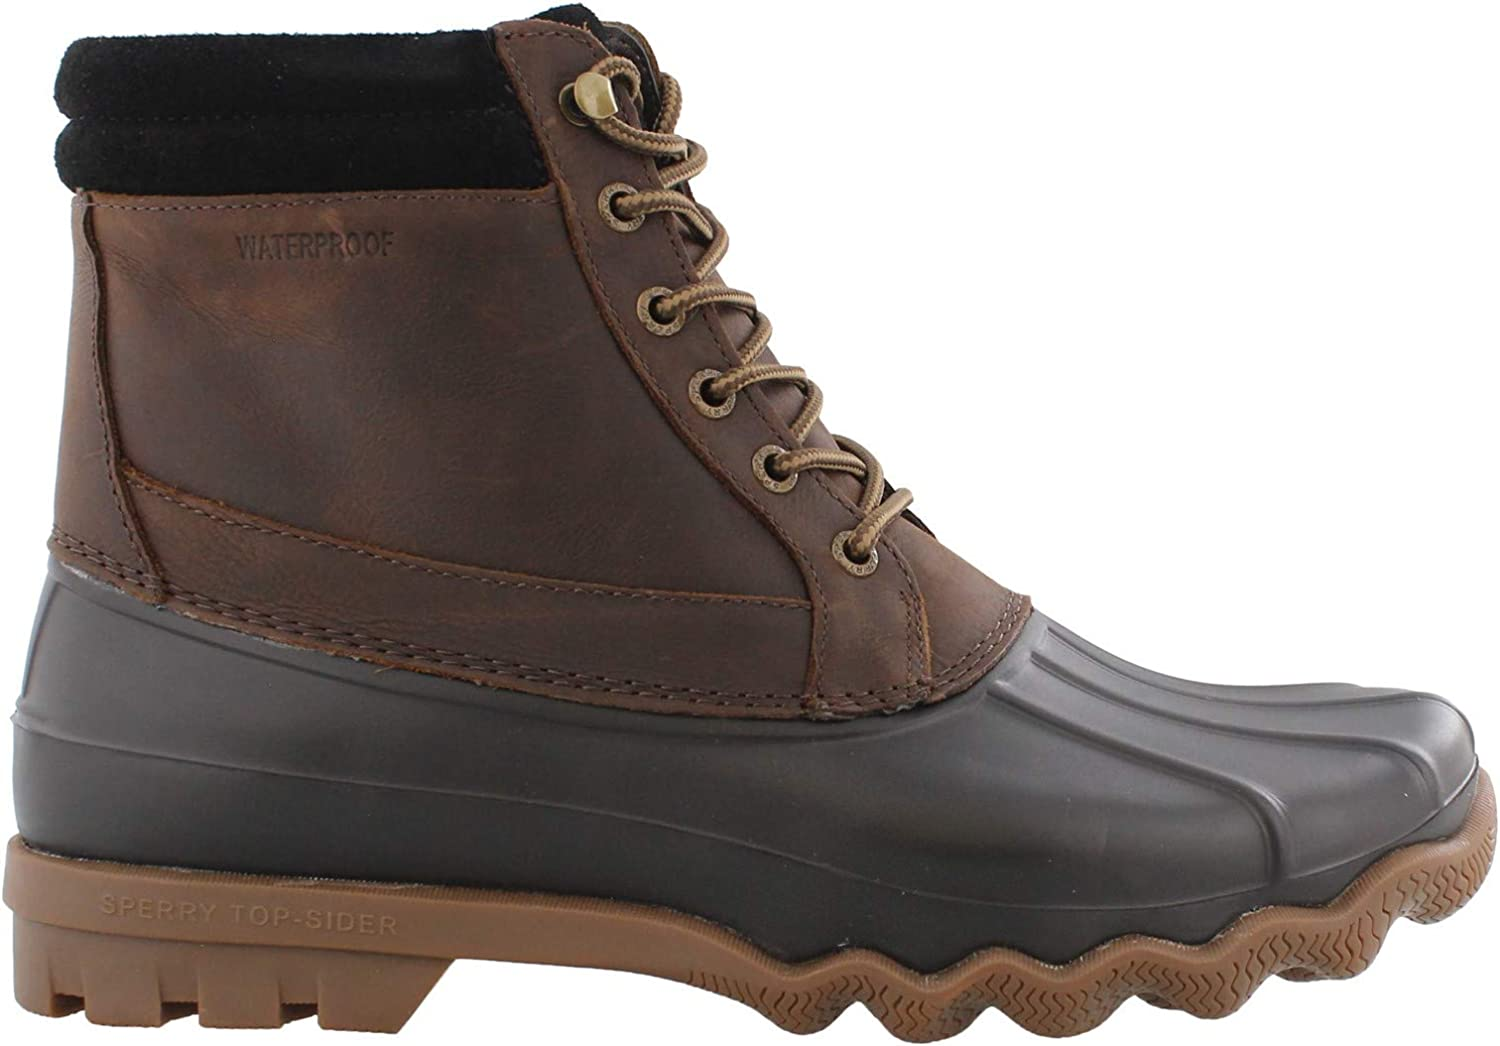 Sperry Unisex-Adult Brewster Ranking TOP5 Rain Boot Recommended